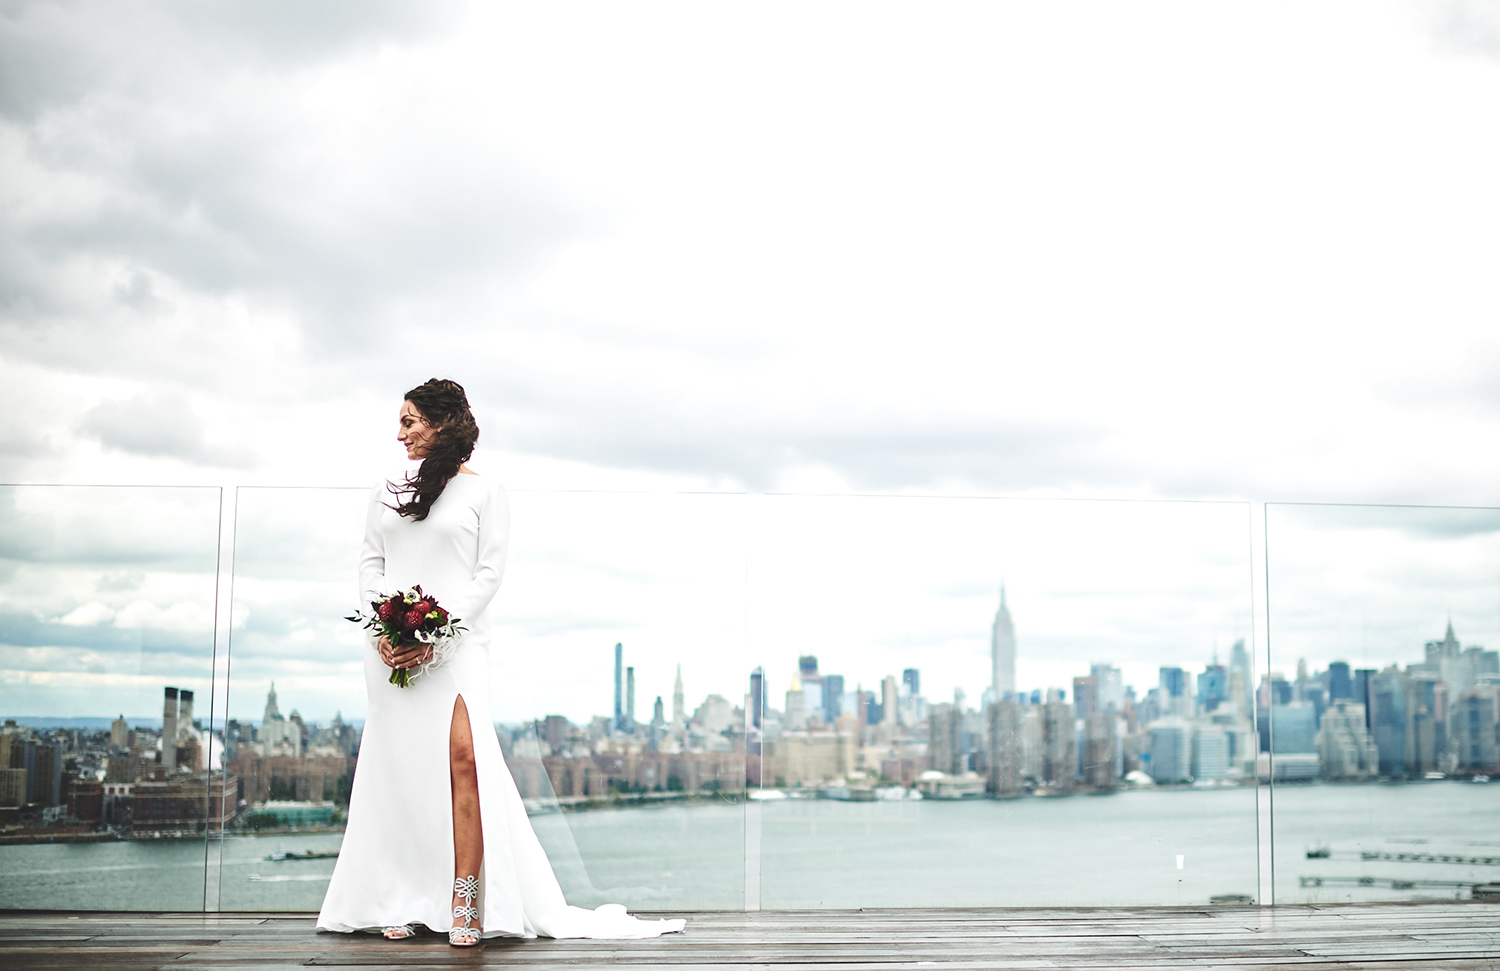 170930_WilliamValeWeddingPhotography_BrooklynWeddingPhotographer_By_BriJohnsonWeddings_0054.jpg